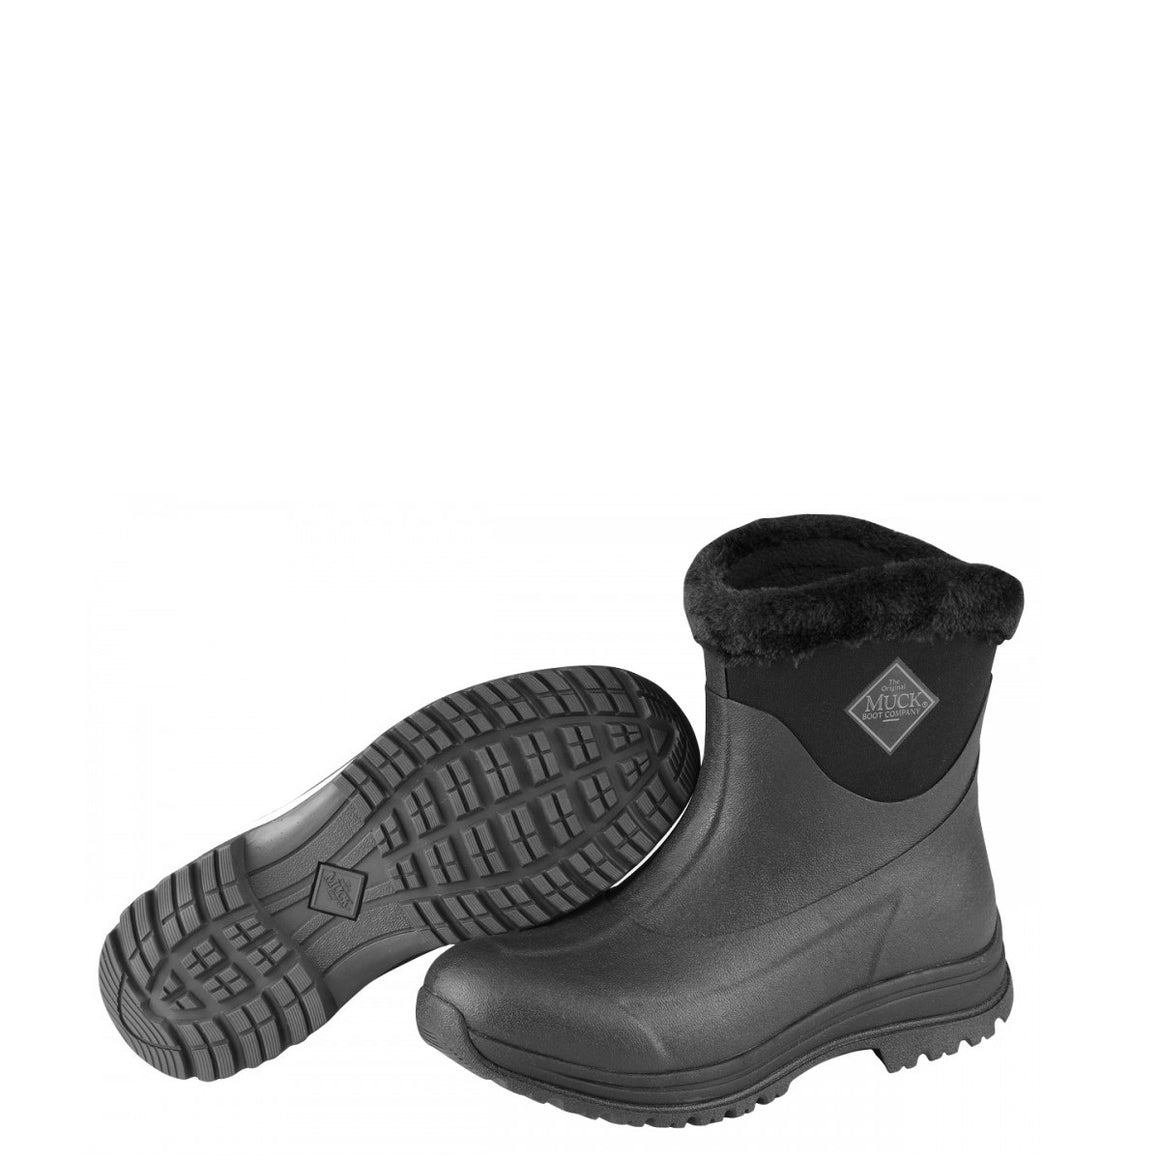 Muck Boots Women's Arctic Apres Slip-On Boot - Black/Charcoal AP8-000